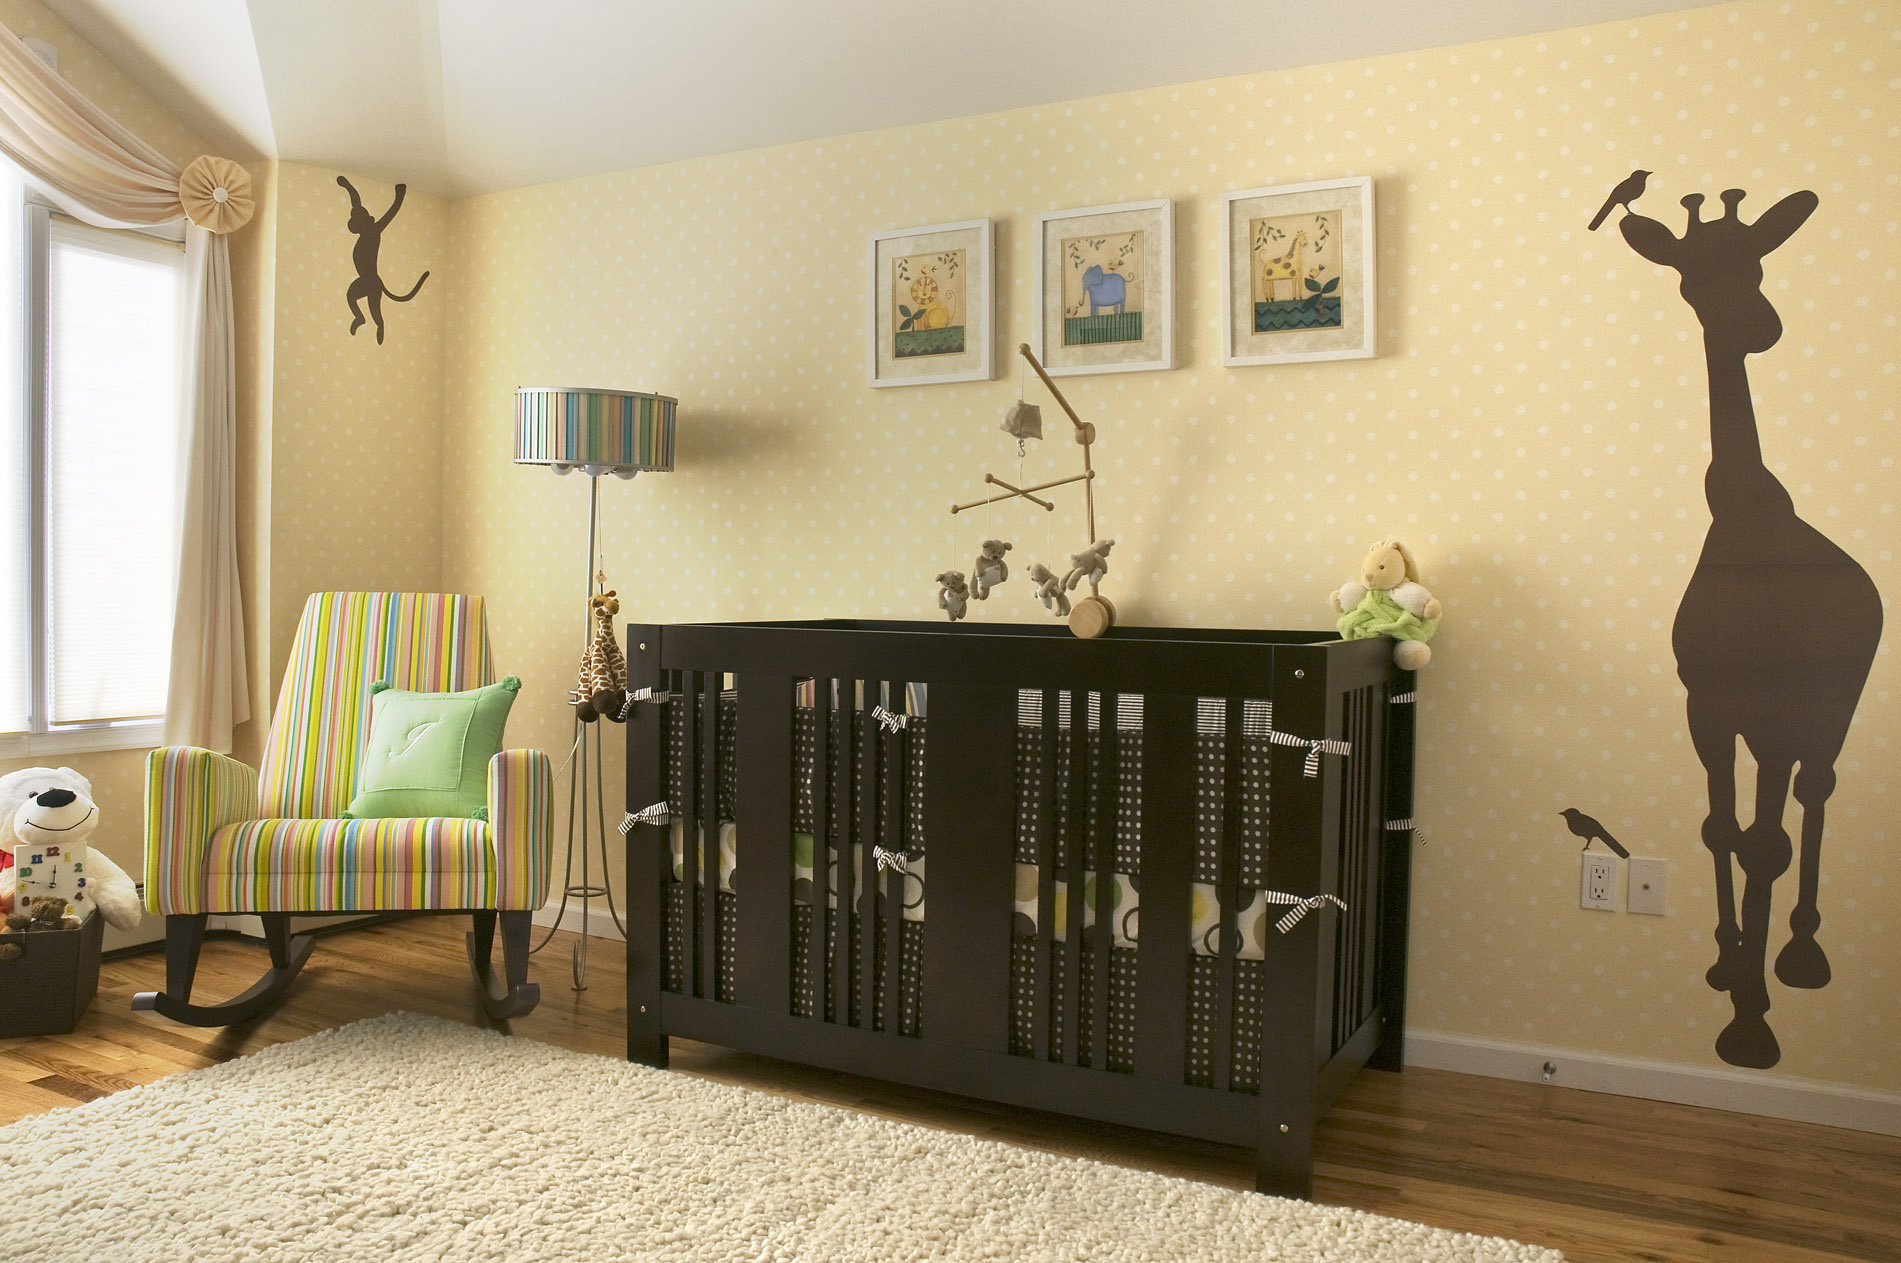 Lullaby land nursery decorating ideas decorating den for Decorating den interiors